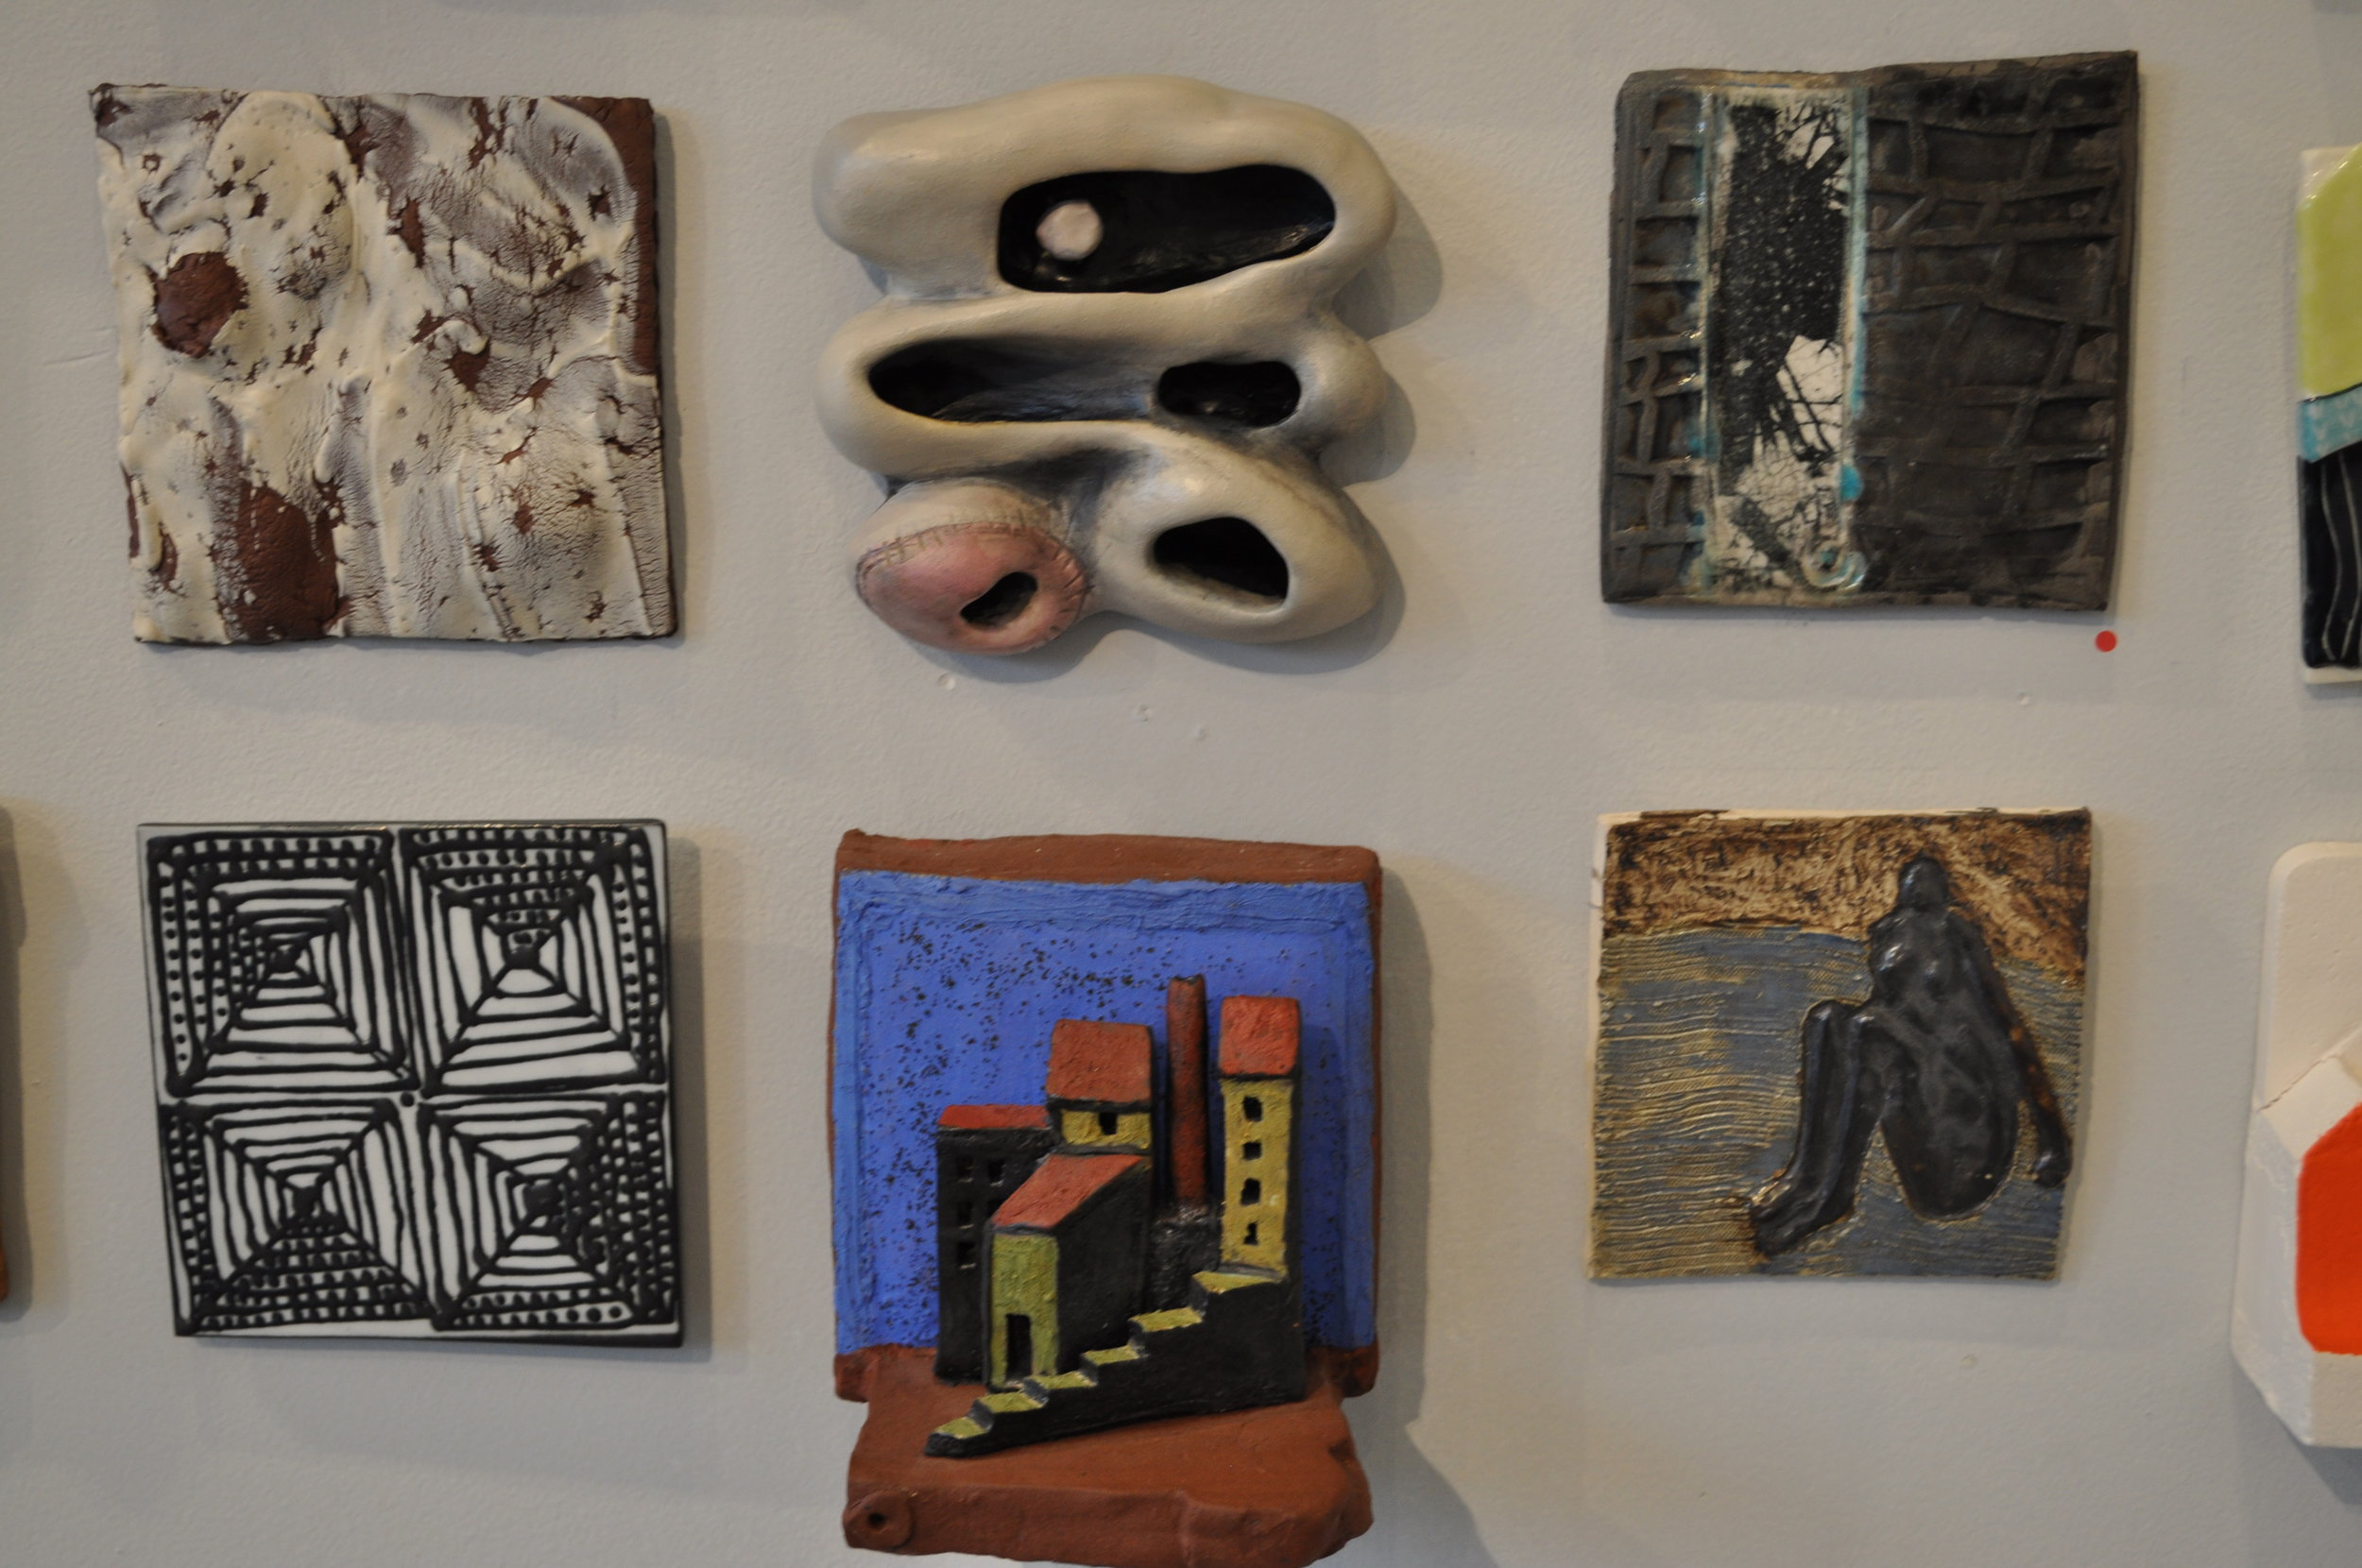 1.  Julie Buyon,  Untitled  $30  2.  Michelle Sorrentino,  Mitochondria  $350  3.  Helayne Friedland,  Branches tile 1  (SOLD)  4.  Reena Kashyap,  4 Squares with dots $50  5 .  Rene Murray,  Floating Castle $500  6.  Jo-Ann Brody,  Seated Women 2 $90